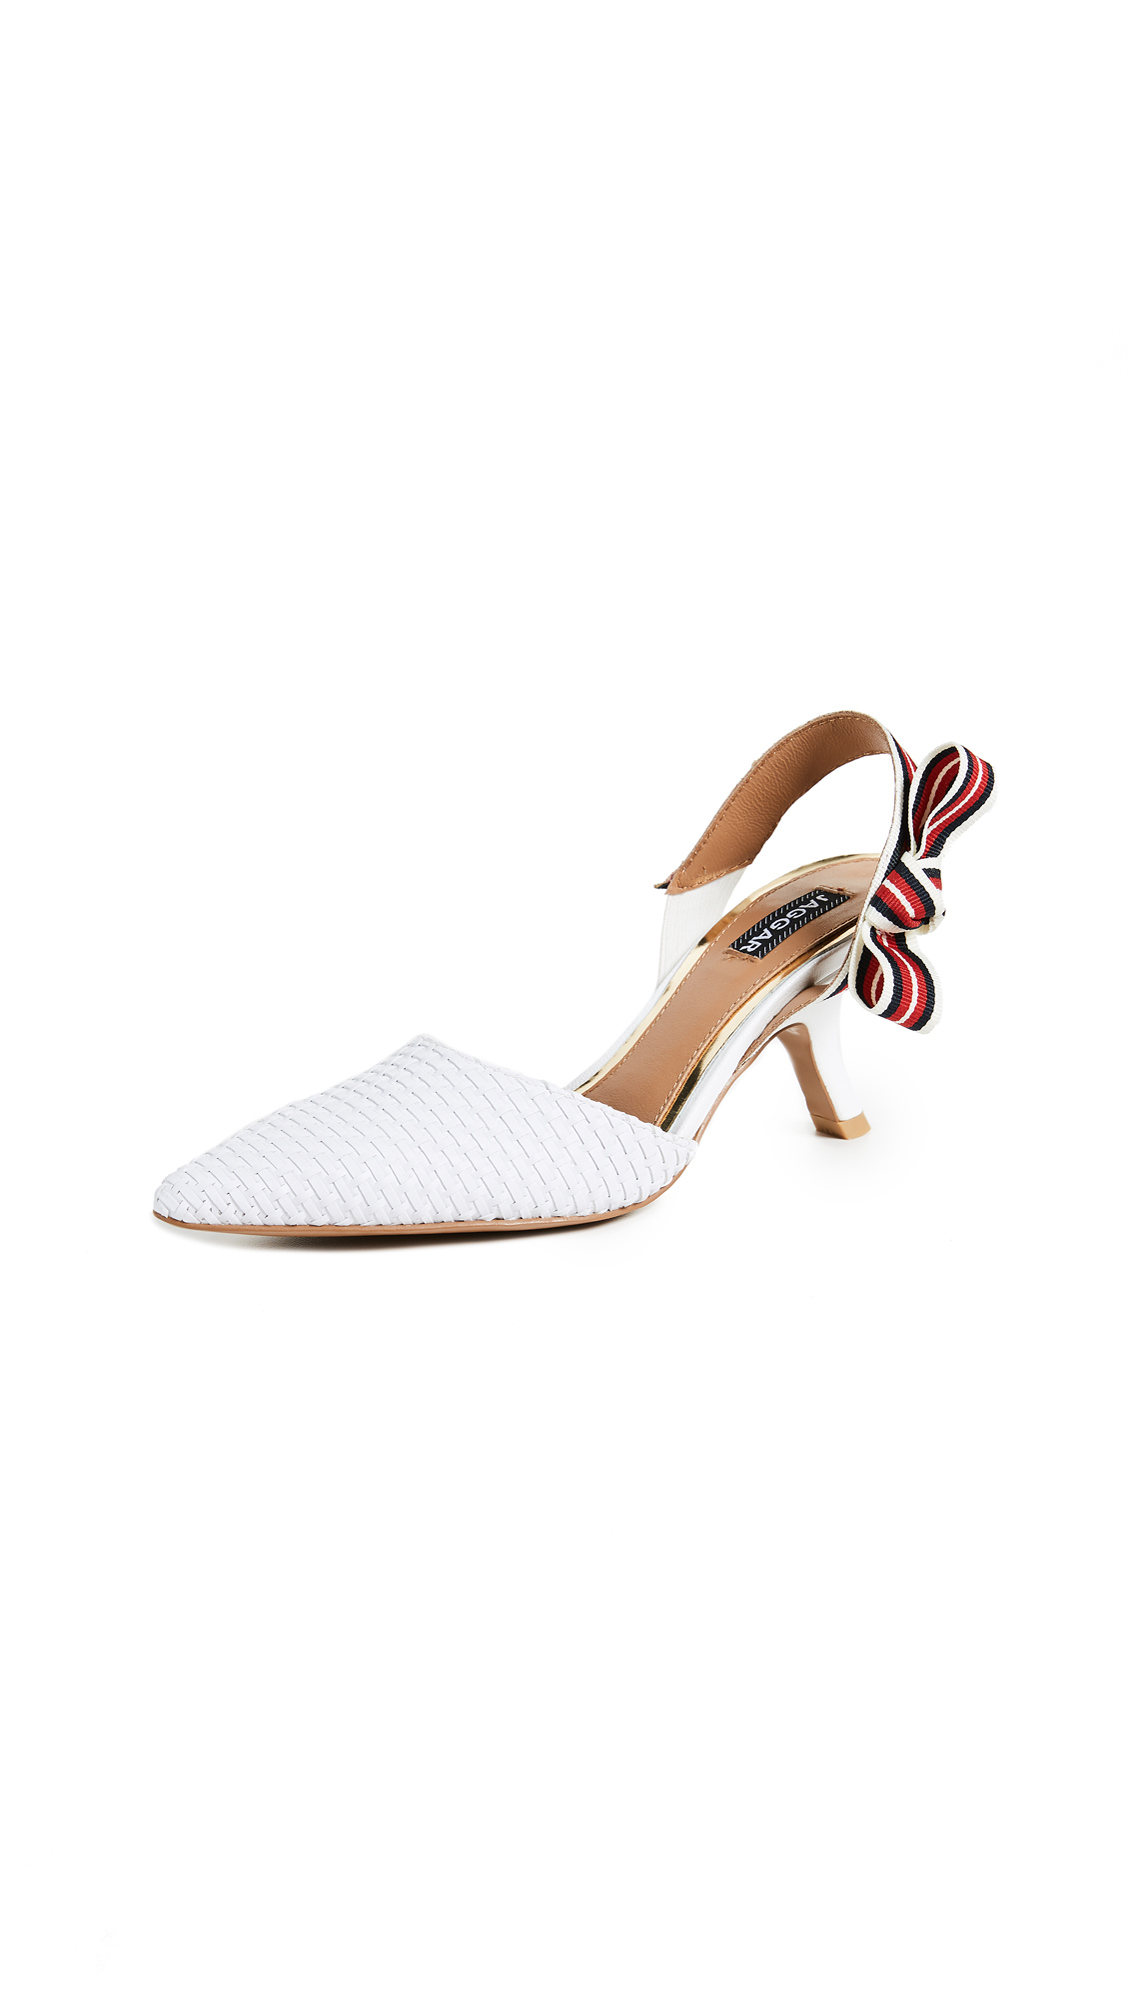 JAGGAR In Detail Kitten Heel Pumps - White